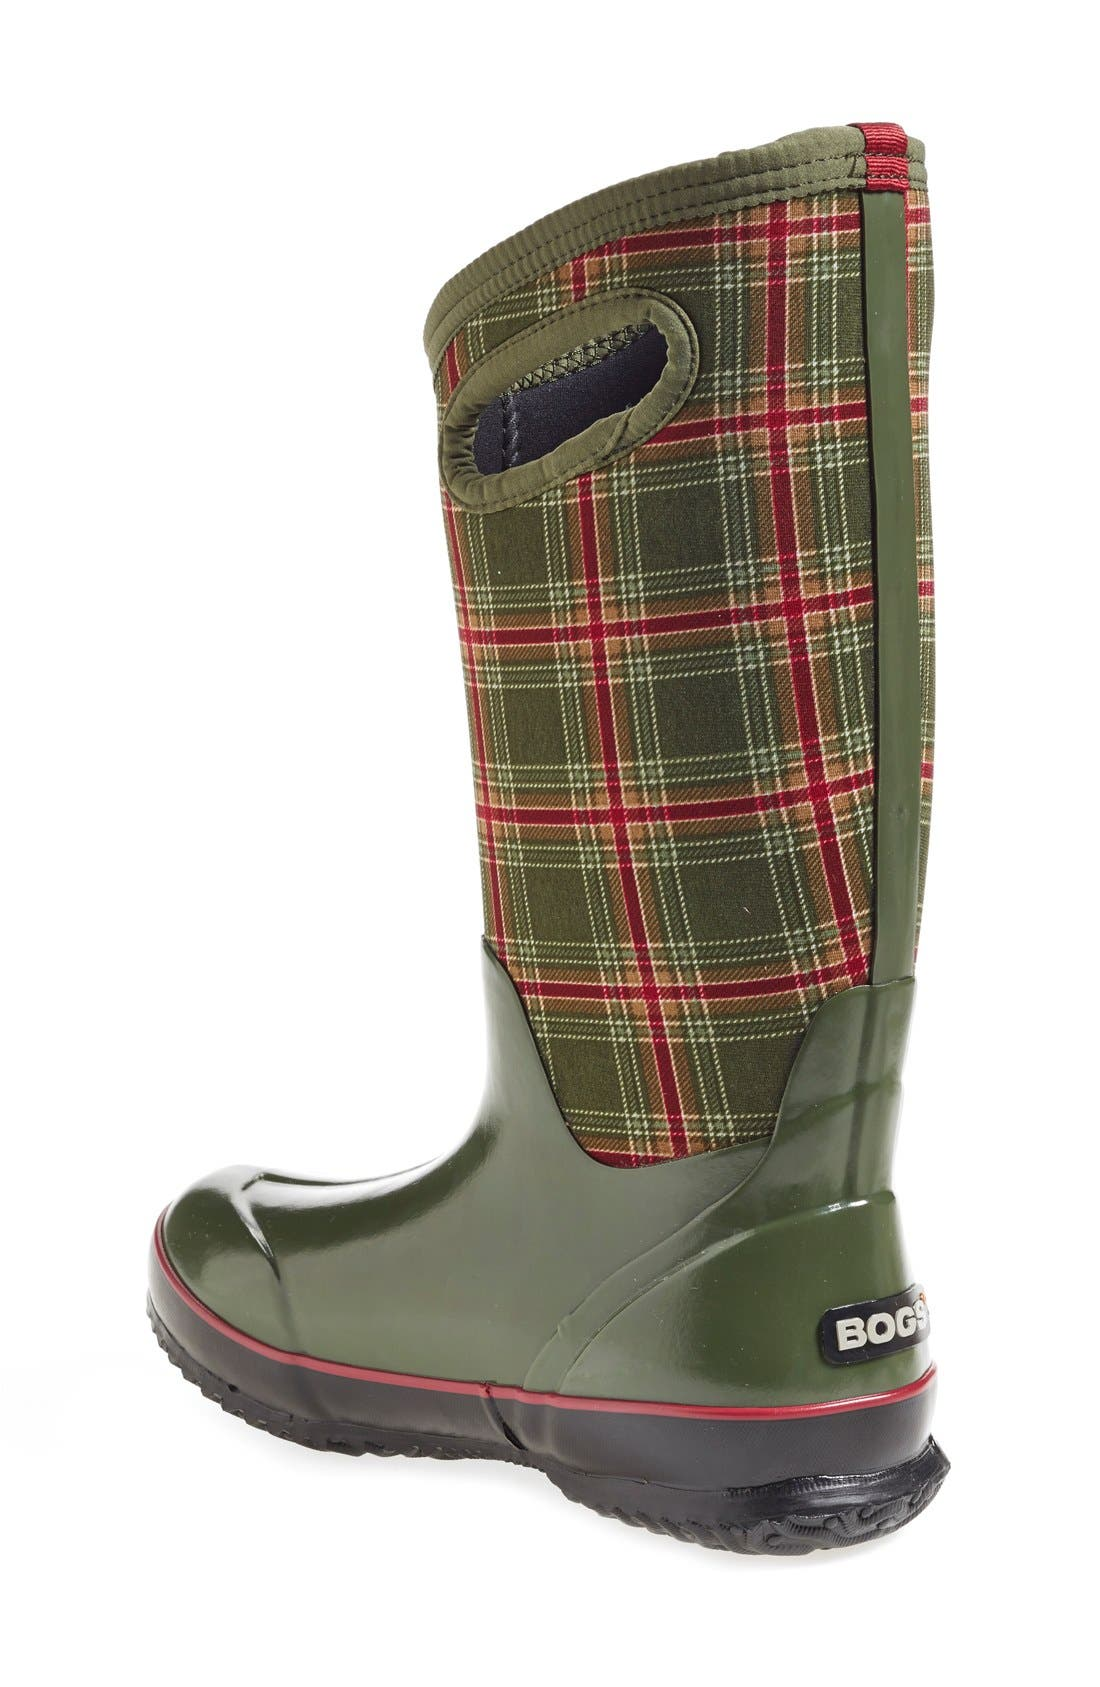 Alternate Image 2  - Bogs 'Classic Winter Plaid' Tall Waterproof Snow Boot with Cutout Handles (Women)